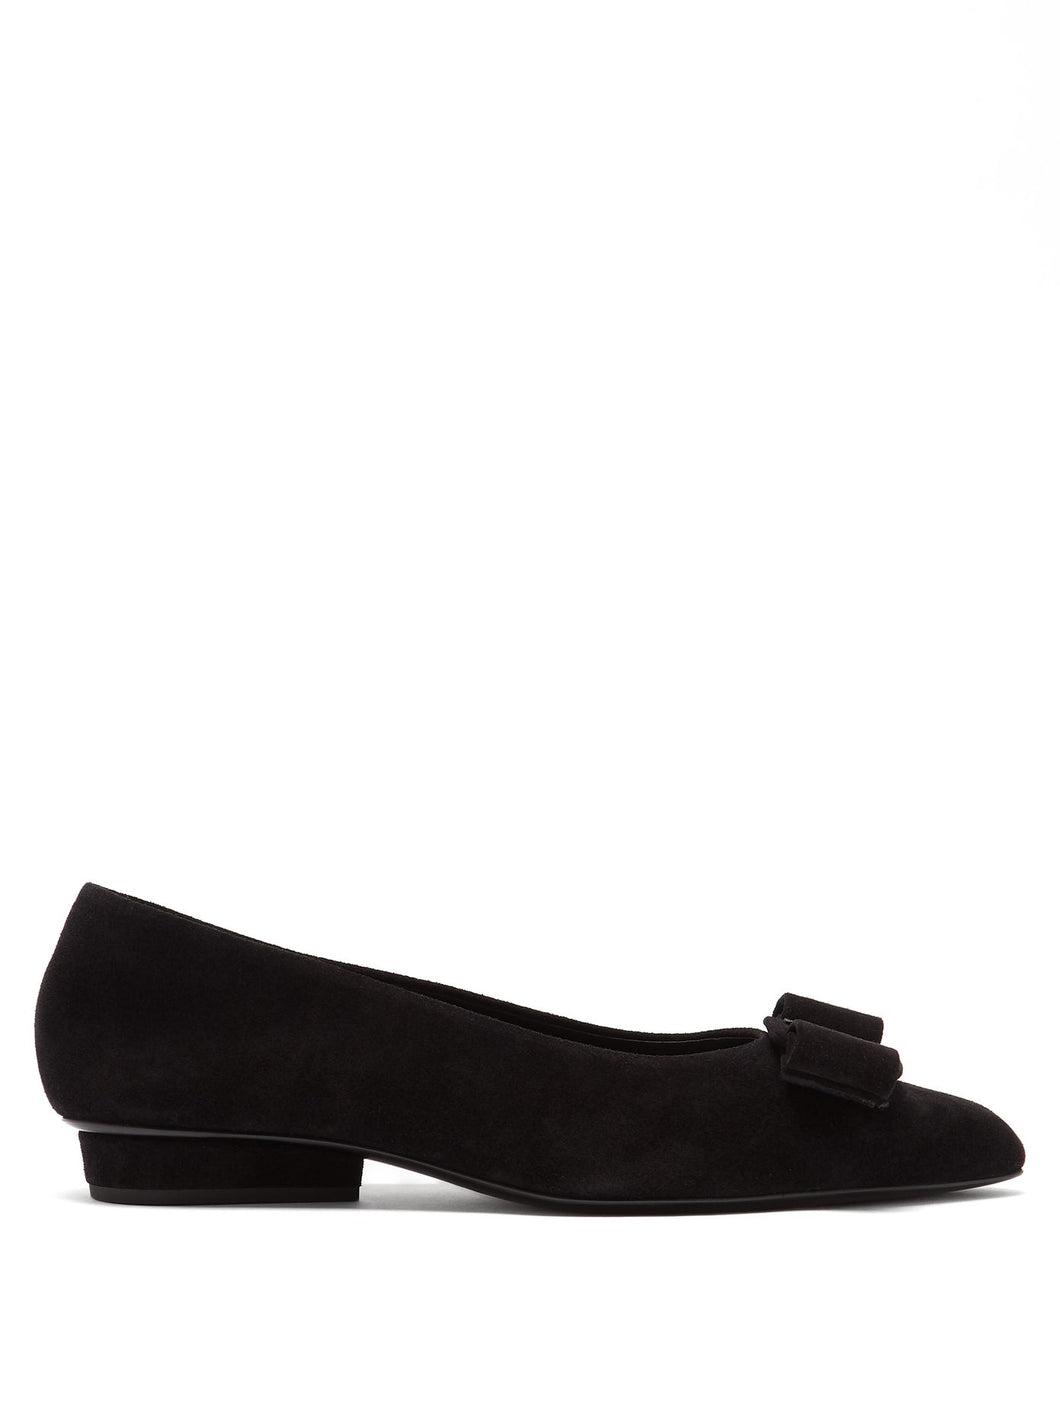 Viva suede point-toe flats